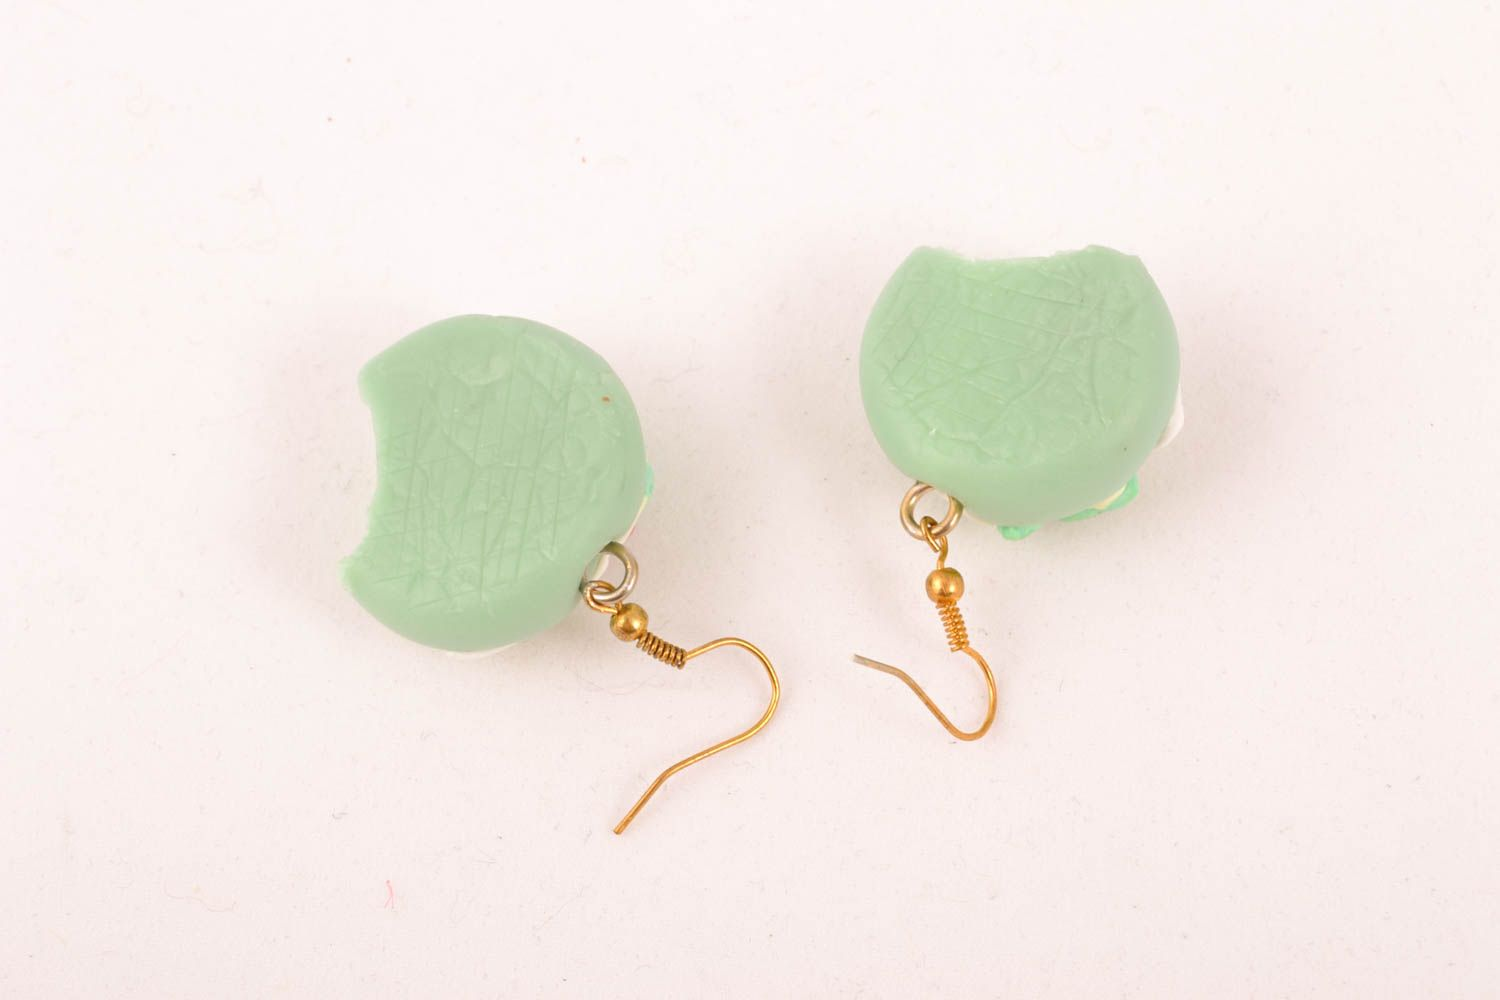 Plastic earrings with charms photo 3